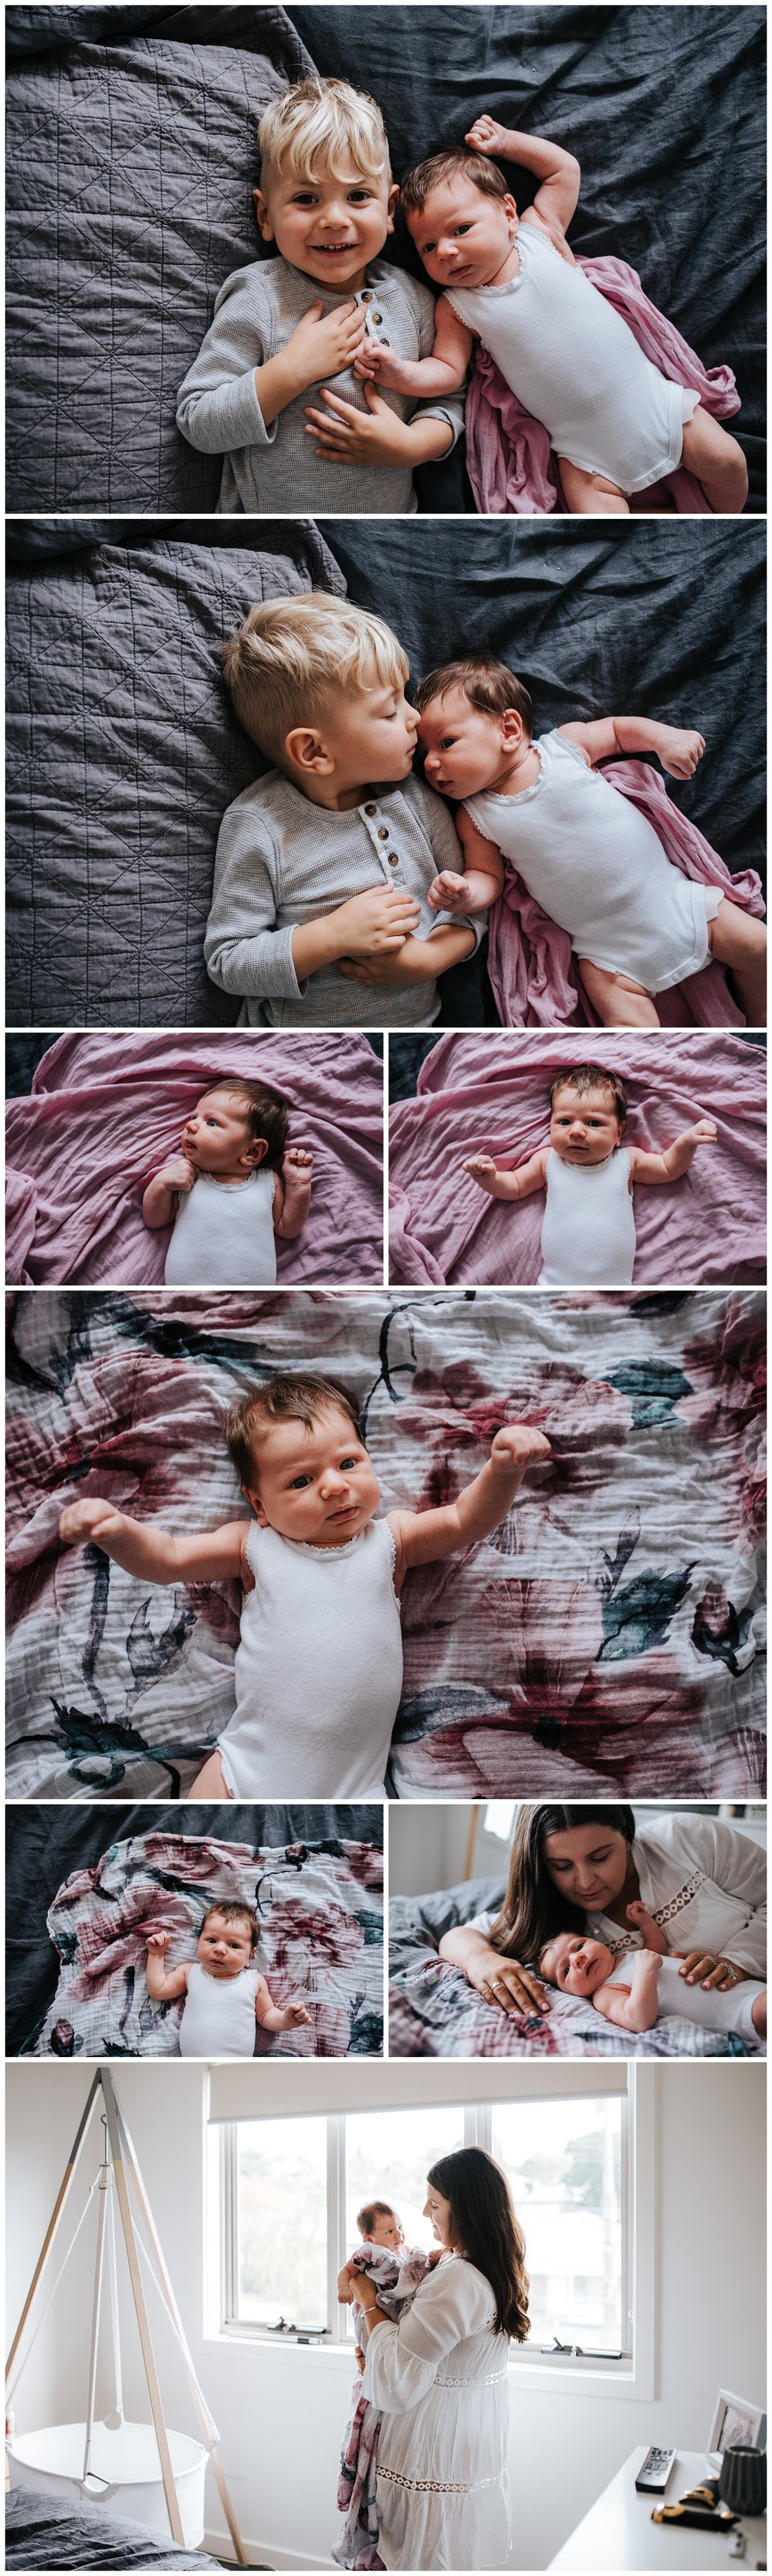 yarraville newborn photographer